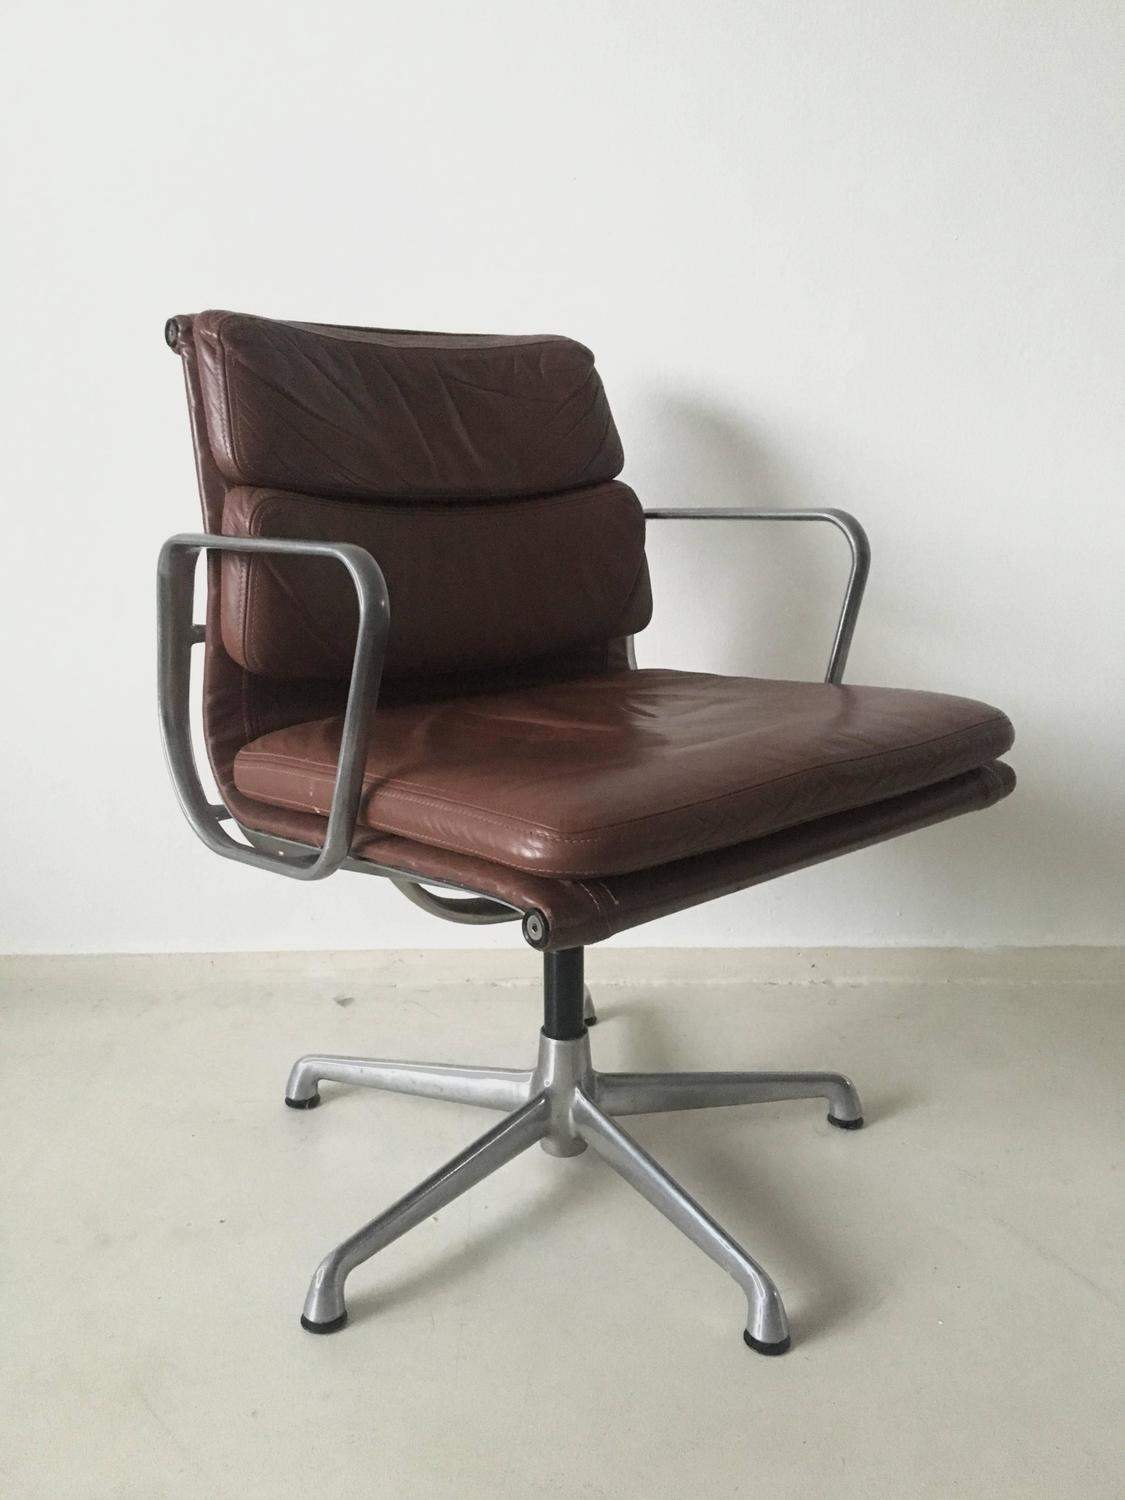 Charles eames soft pad chairs ea208 for icf italy 1960s for Eames chair kopie